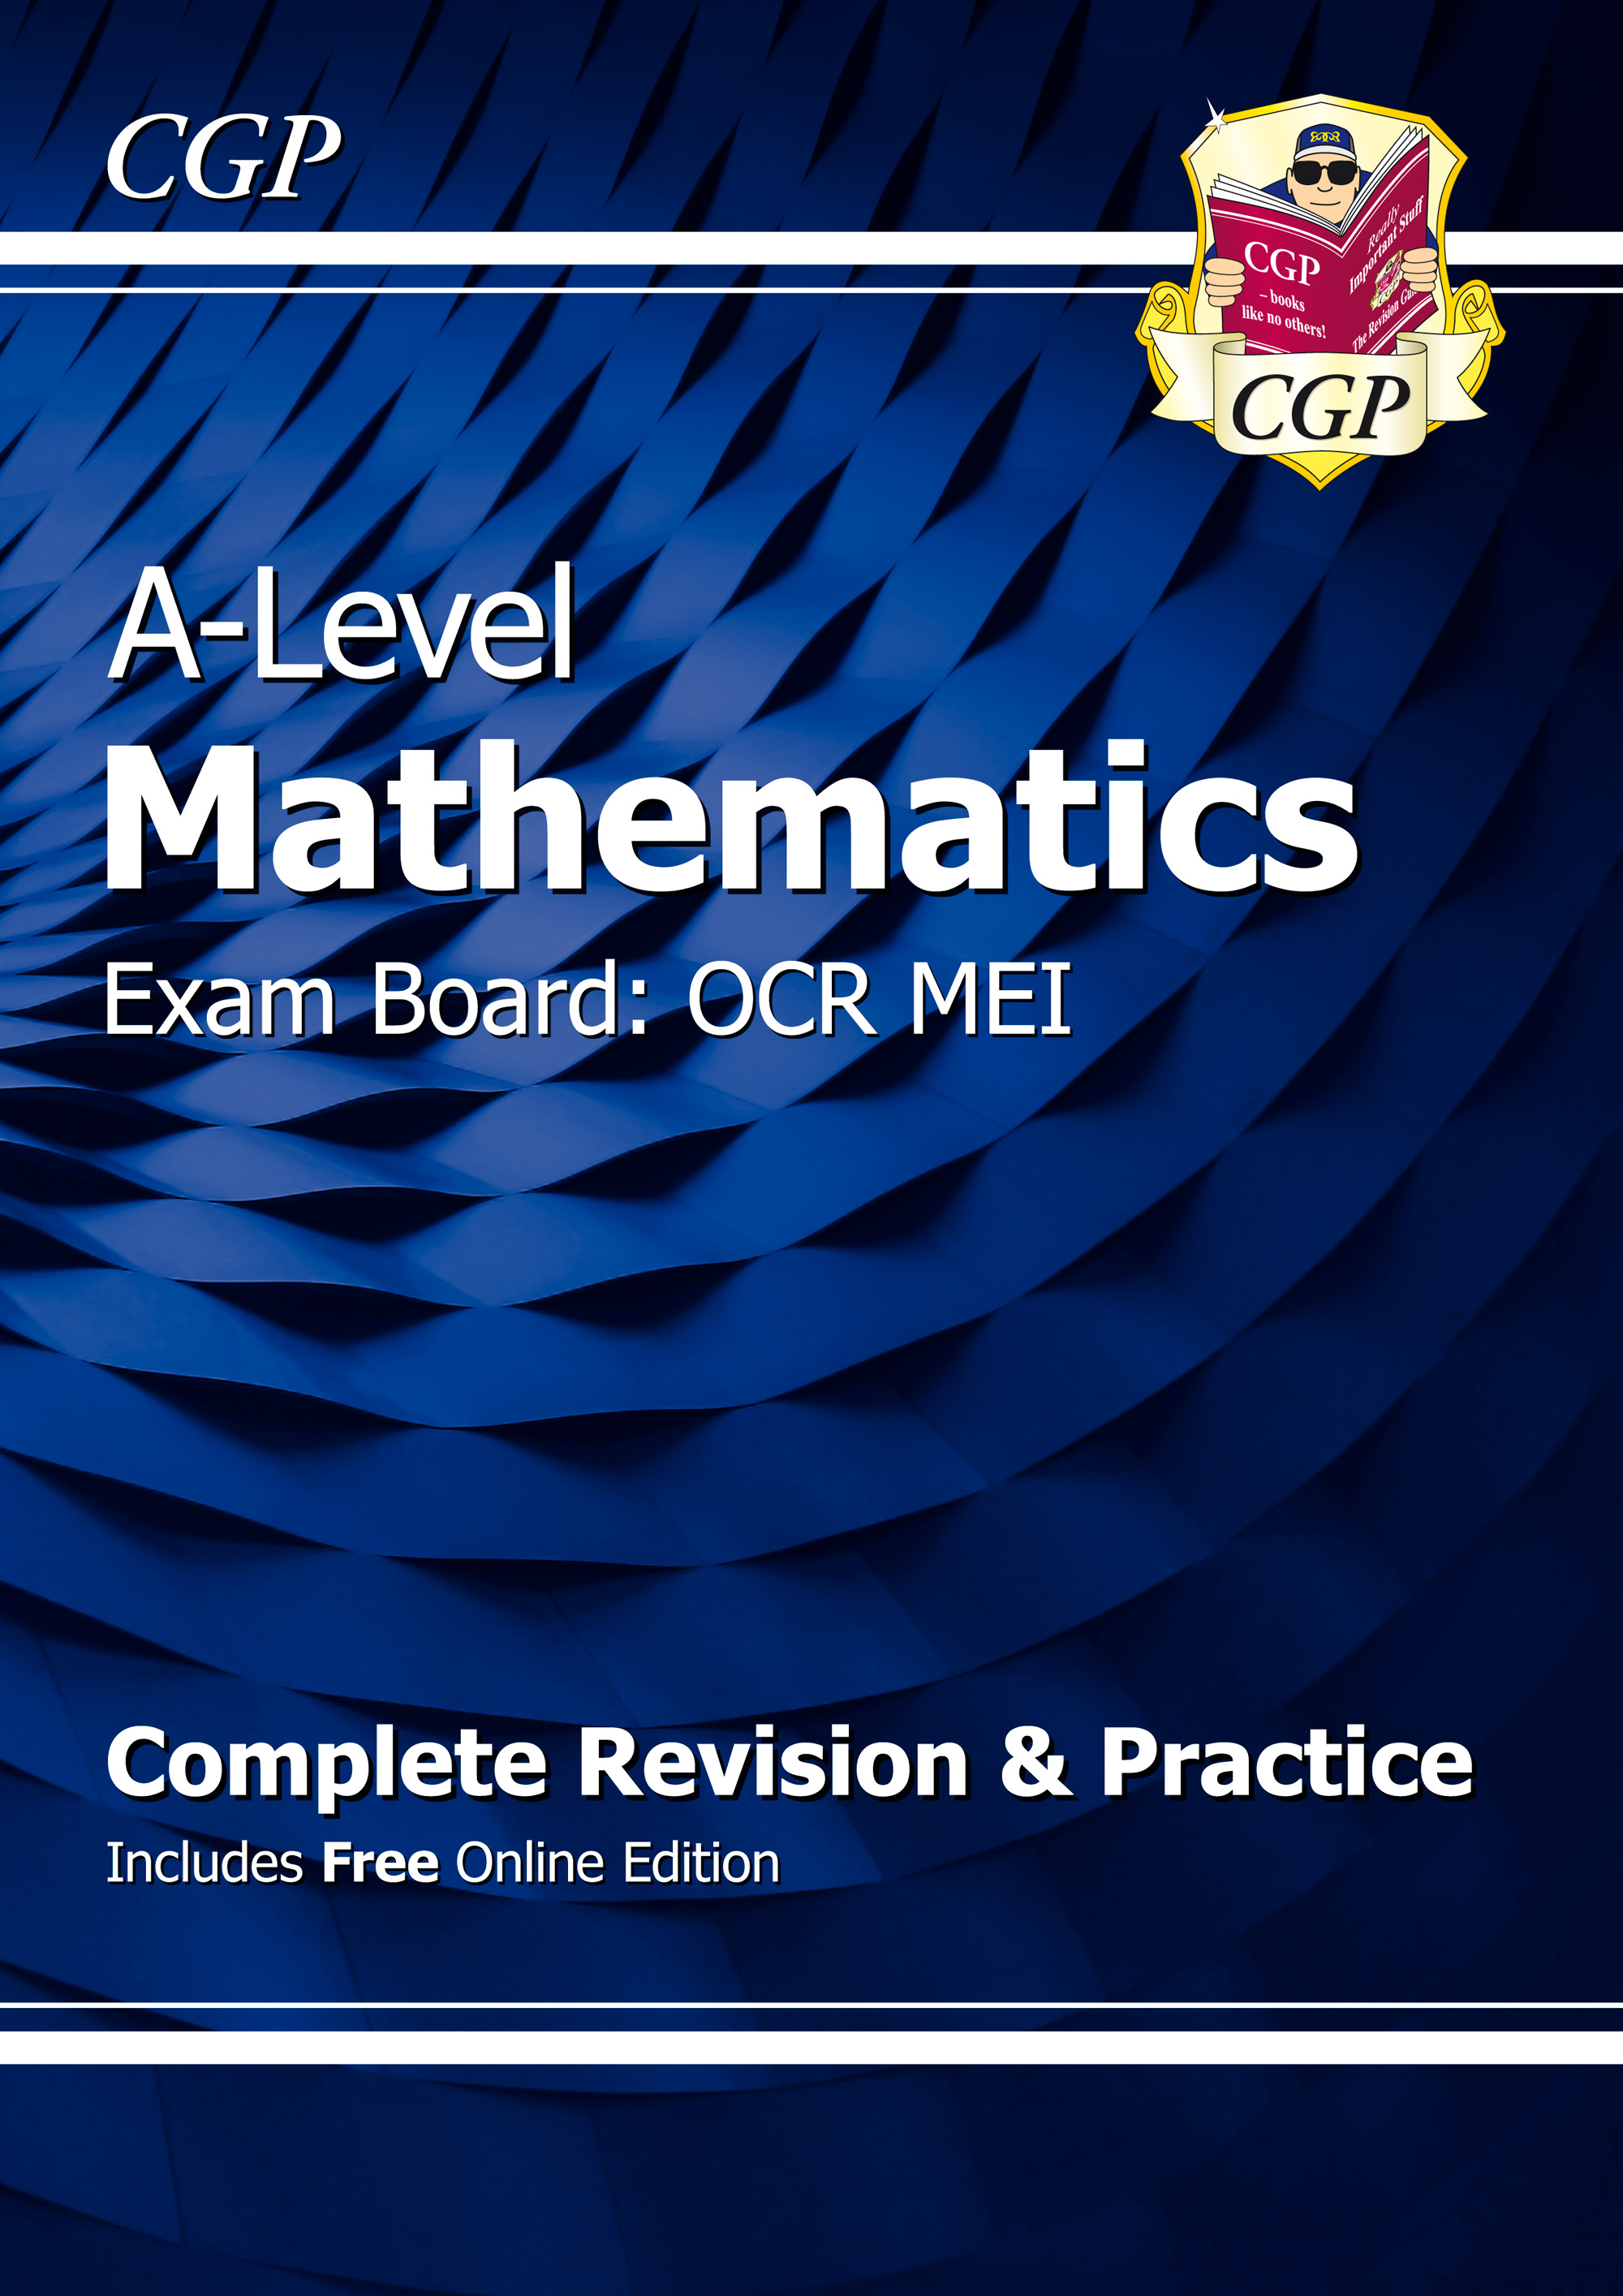 MRMR71 - New A-Level Maths for OCR MEI: Year 1 & 2 Complete Revision & Practice with Online Edition